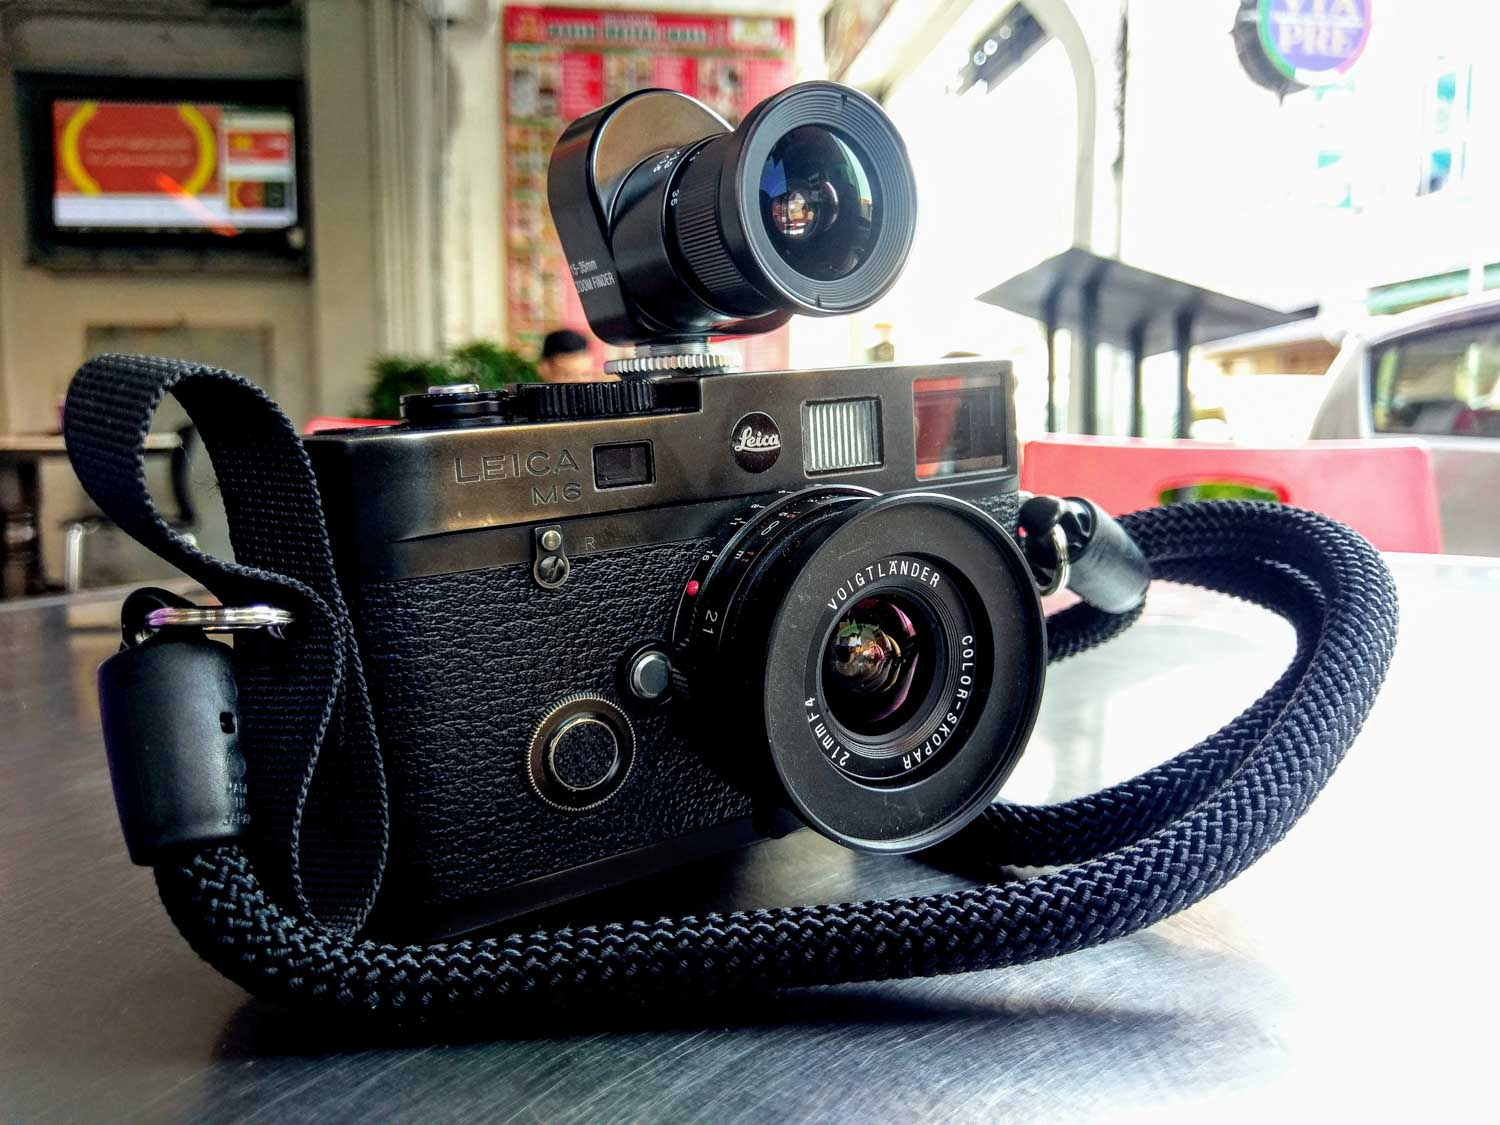 Leica M6 TTL 0.85, Voigtlander Zoom Finder and Color Skopar 21mm f/4